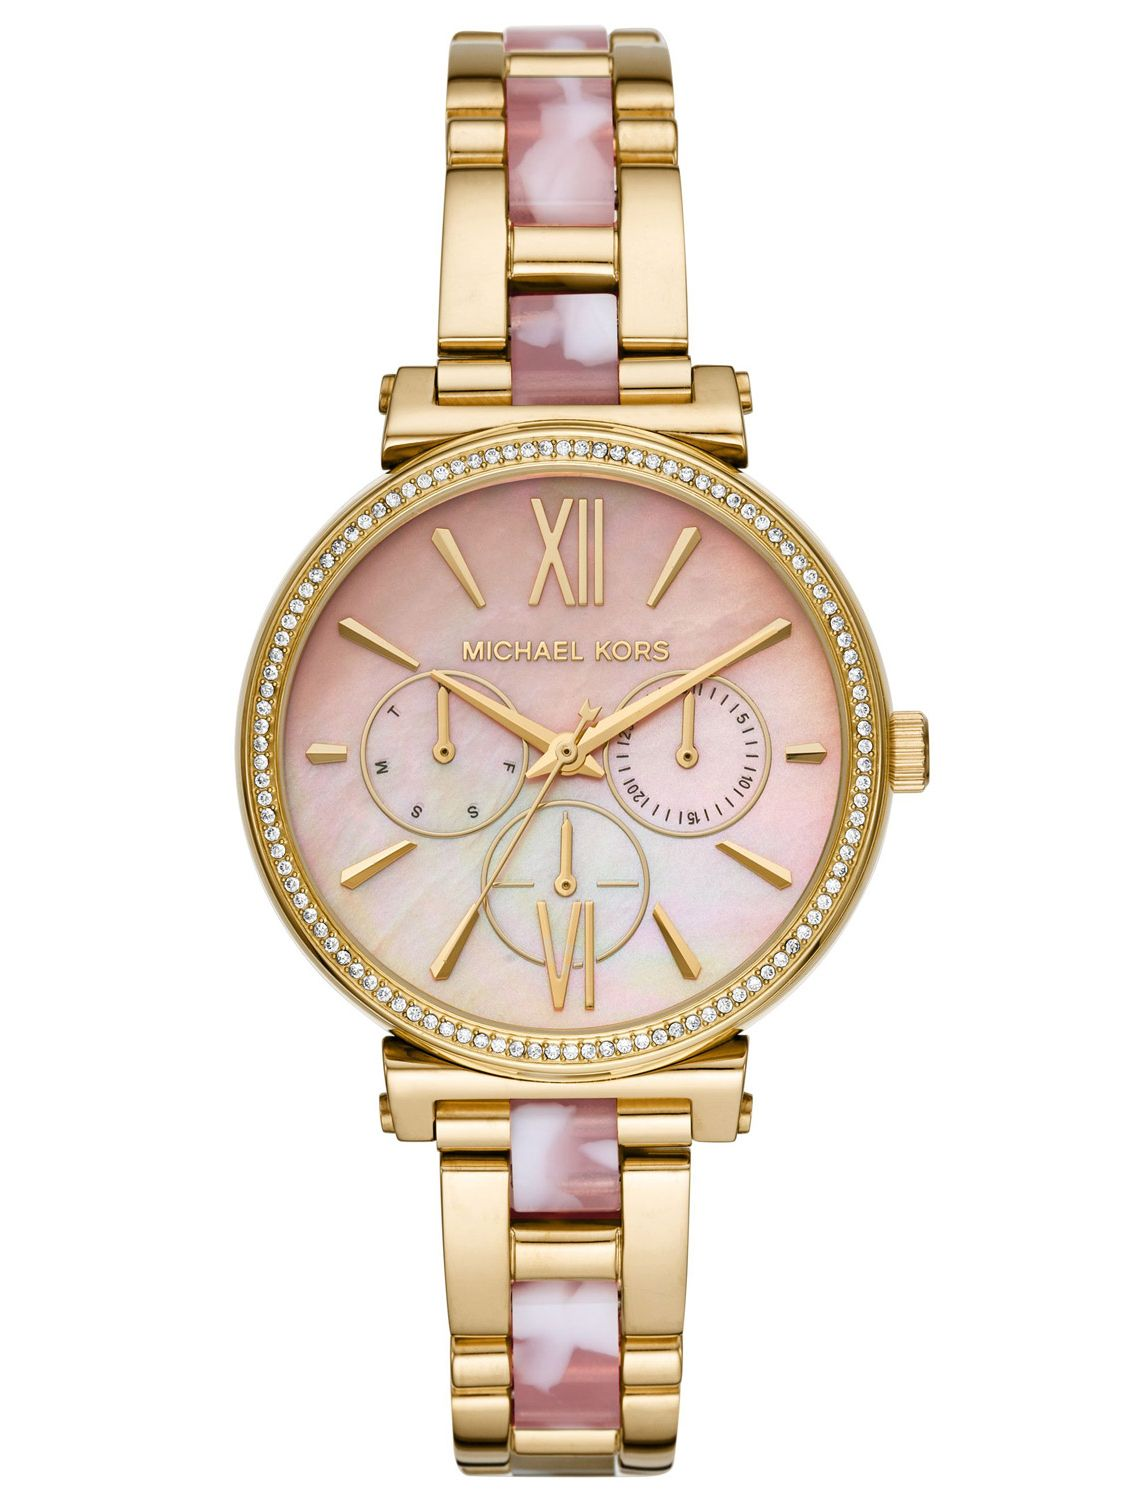 Michael Kors MK4344 Damenuhr Multifunktion Sofie